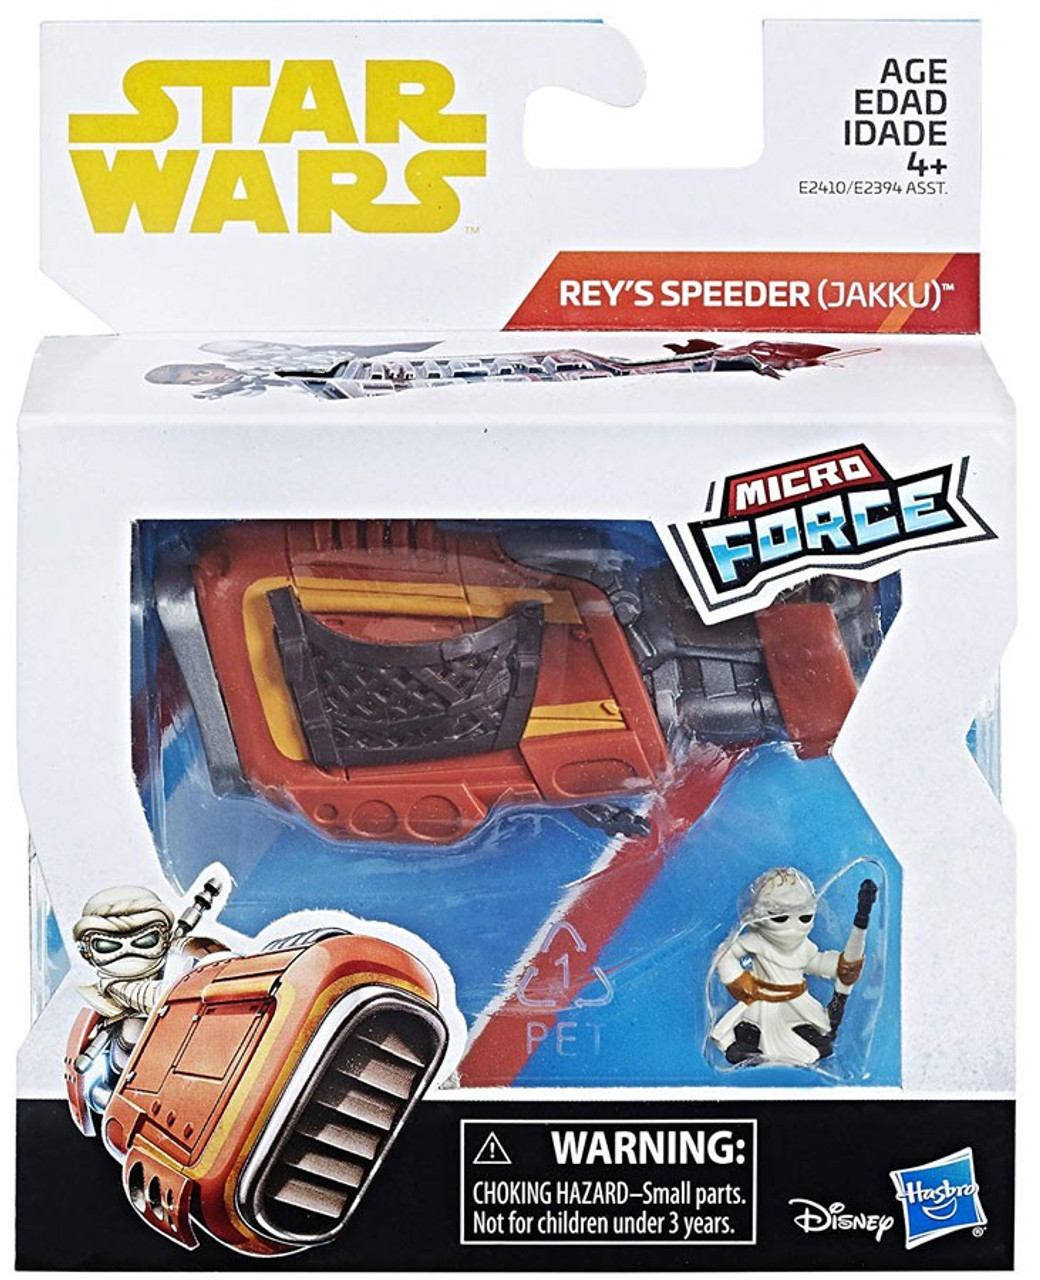 Disney Star Wars ATAT With Commander Micro Force Toy Figure Playset NEW Hasbro